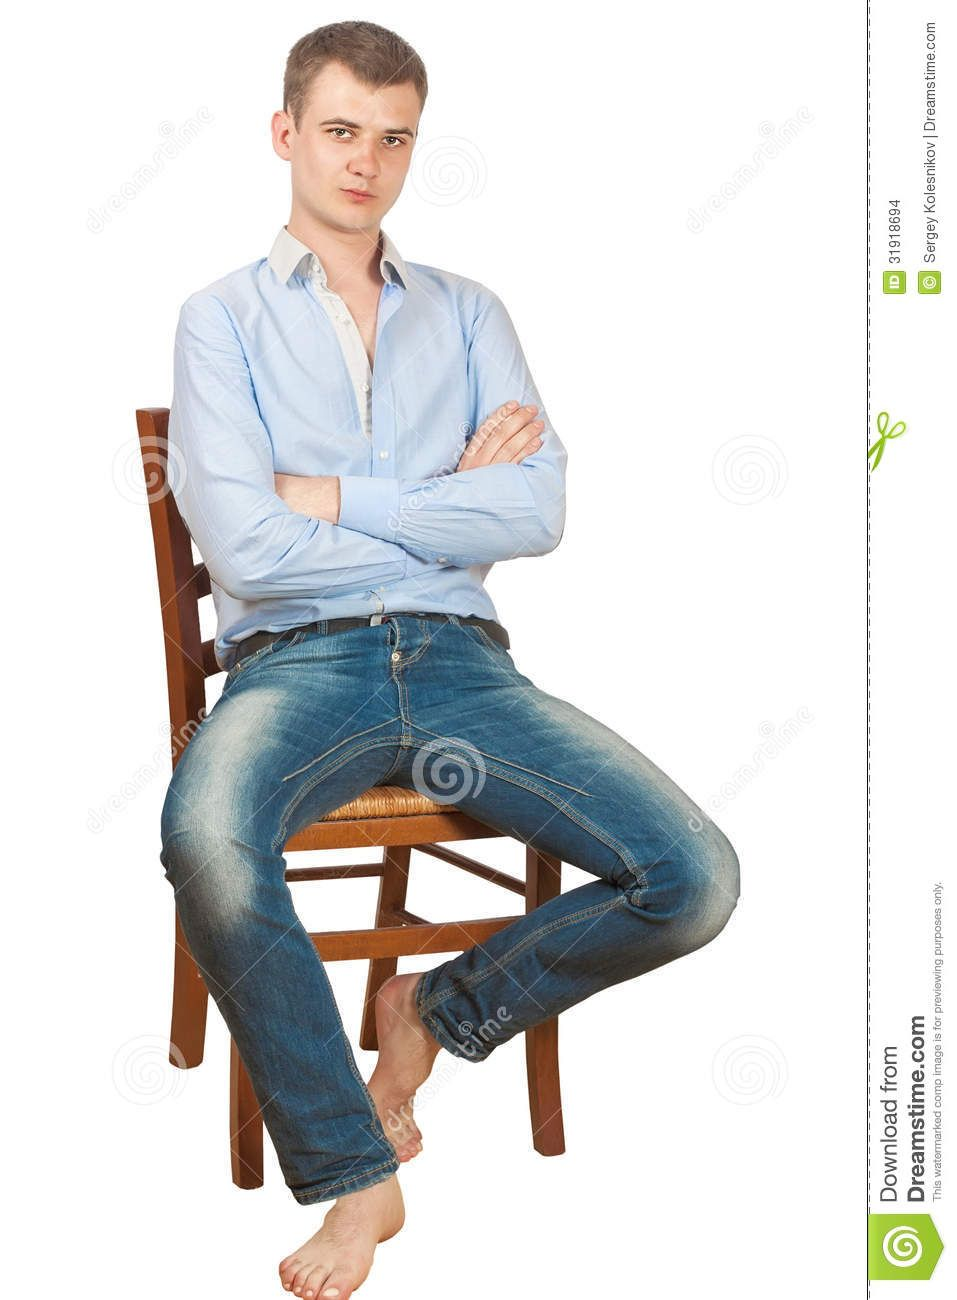 Image Result For Sitting In Chair Man With Images Man Sit Fashion